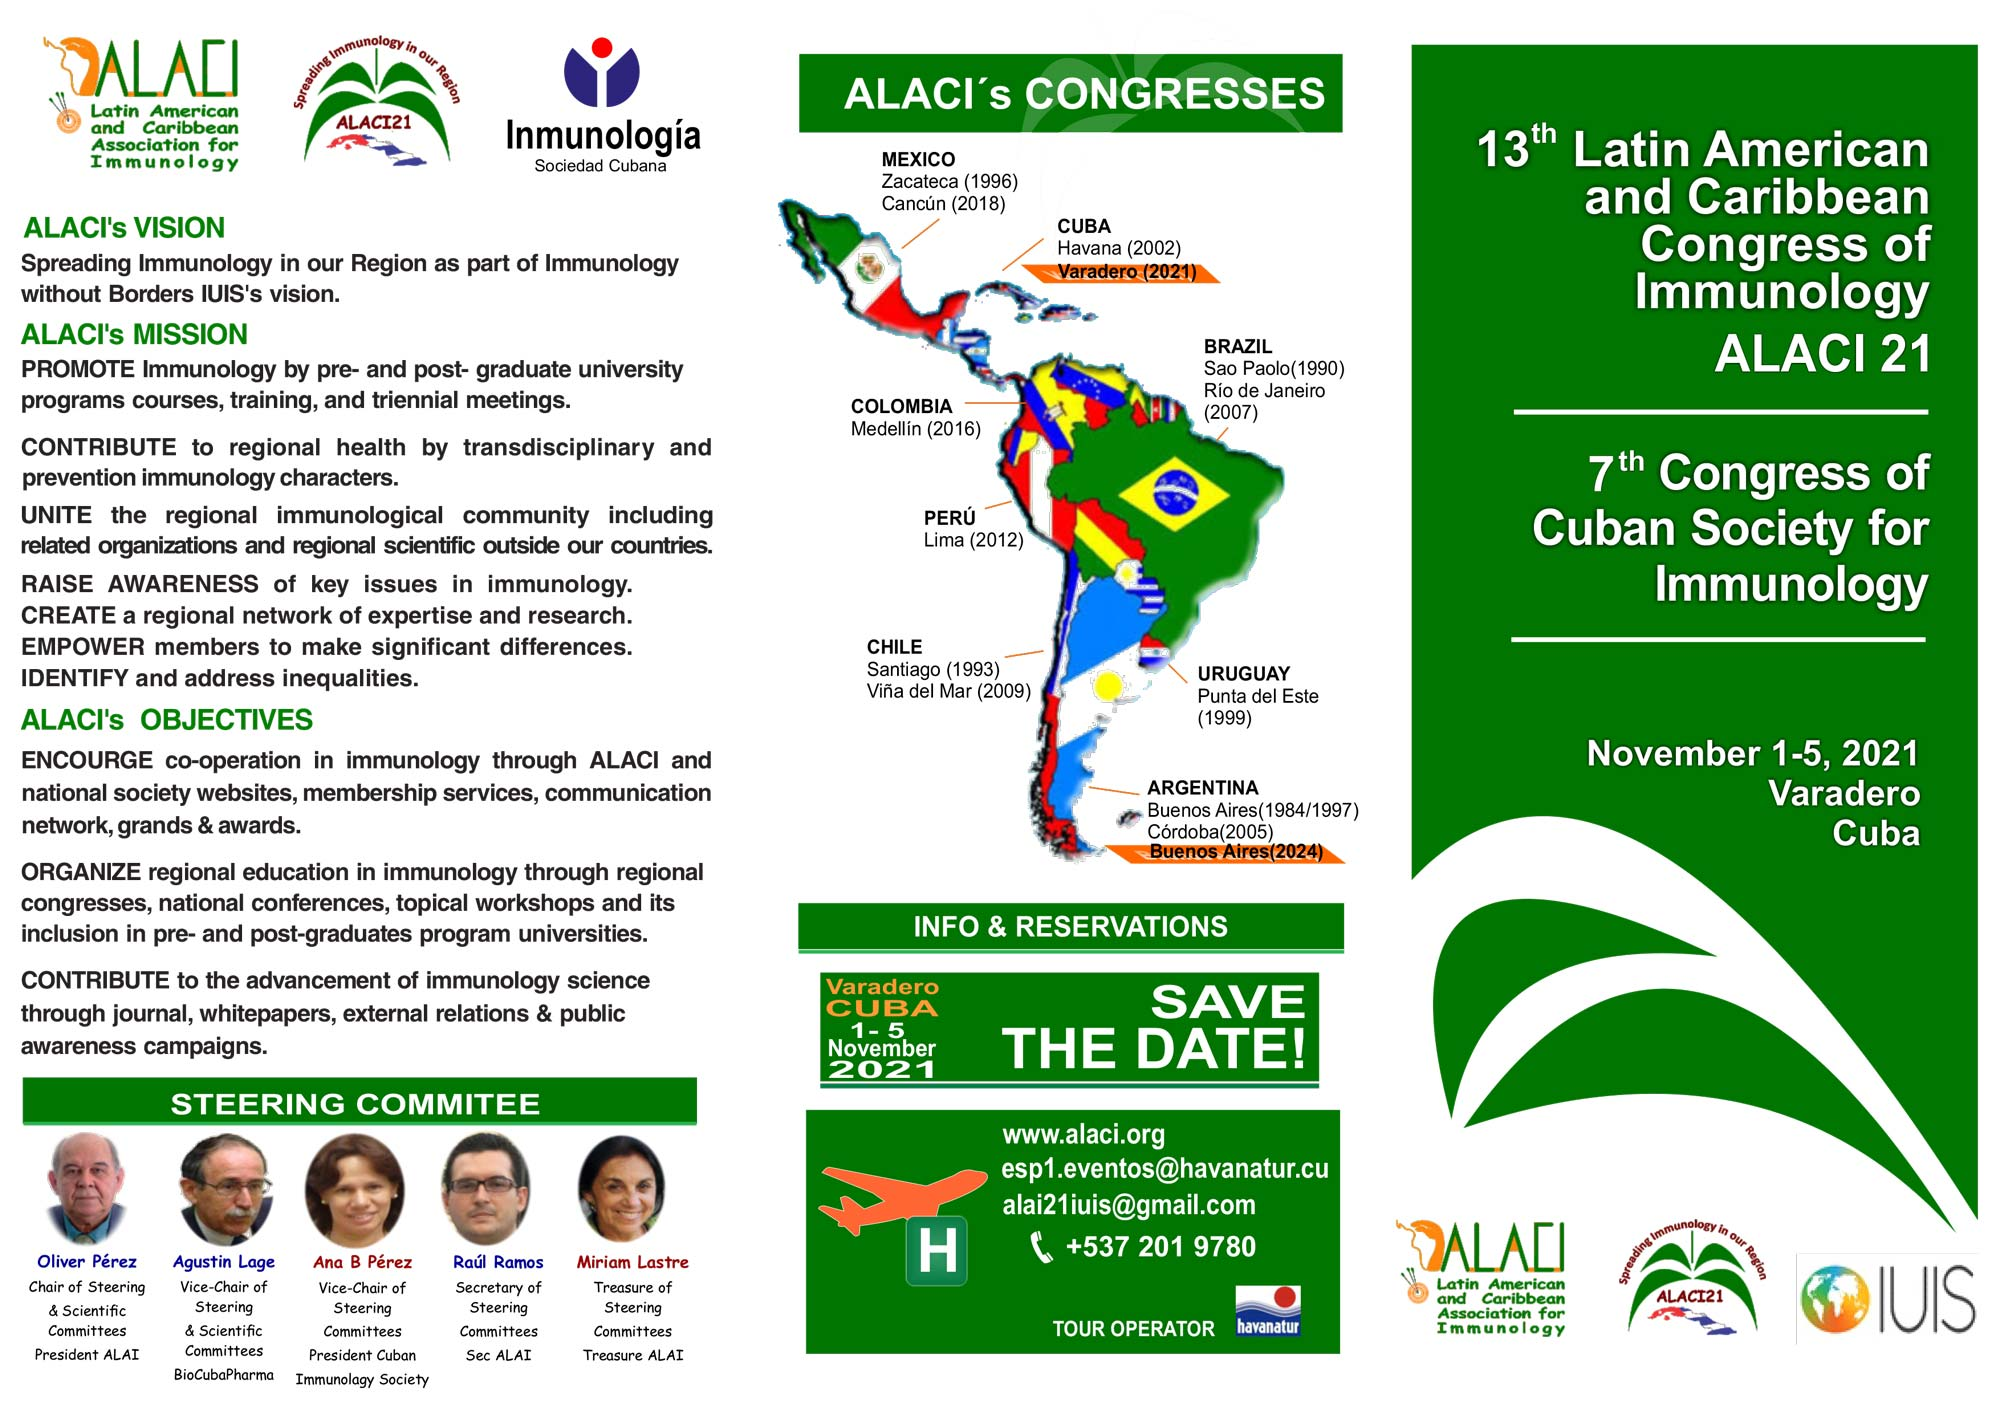 13th Latim American and Caribbean Congress of Immunology (ALACI 21) graphic